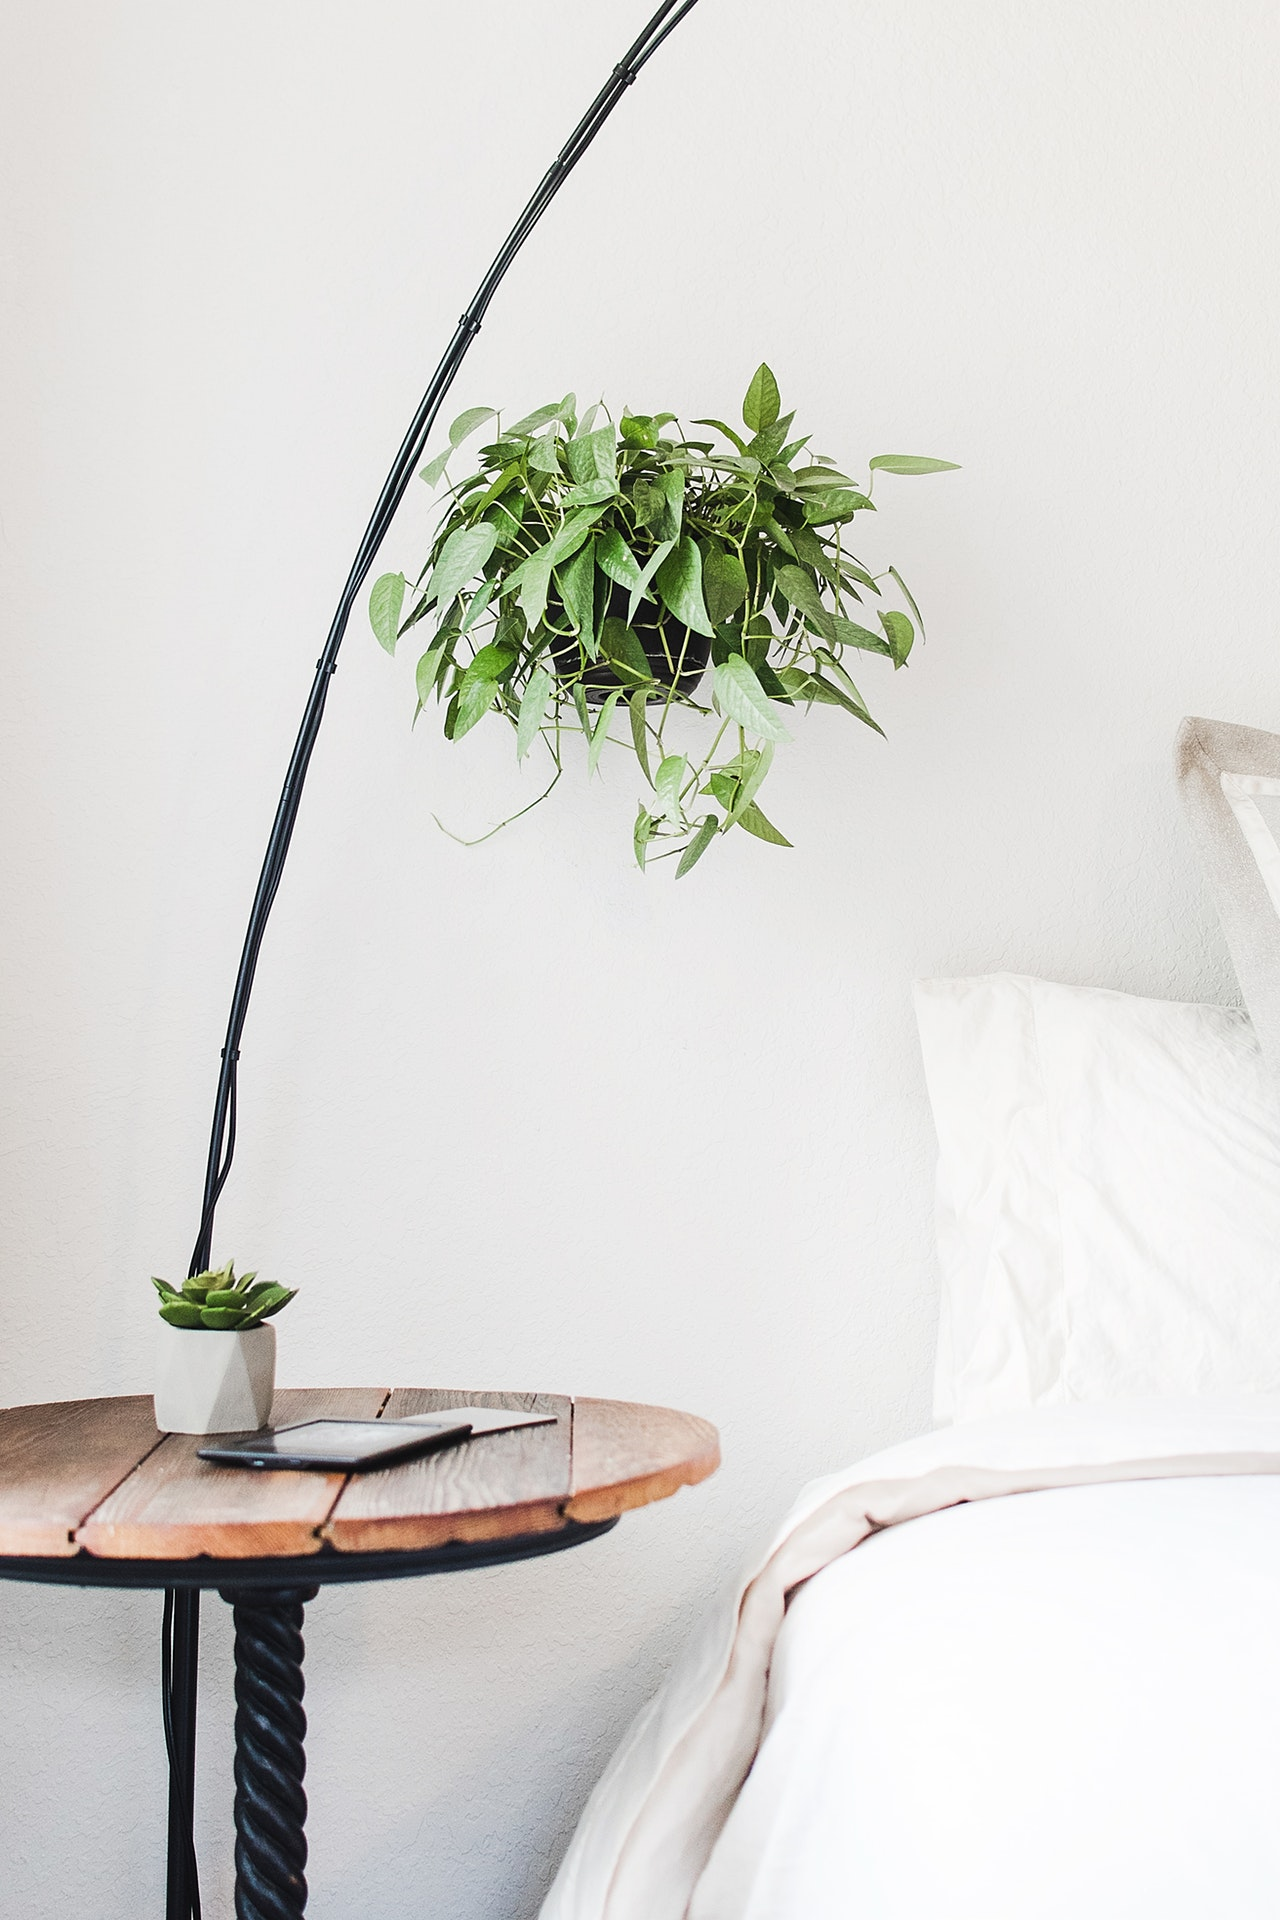 bed-decor-indoor-plants-2374967